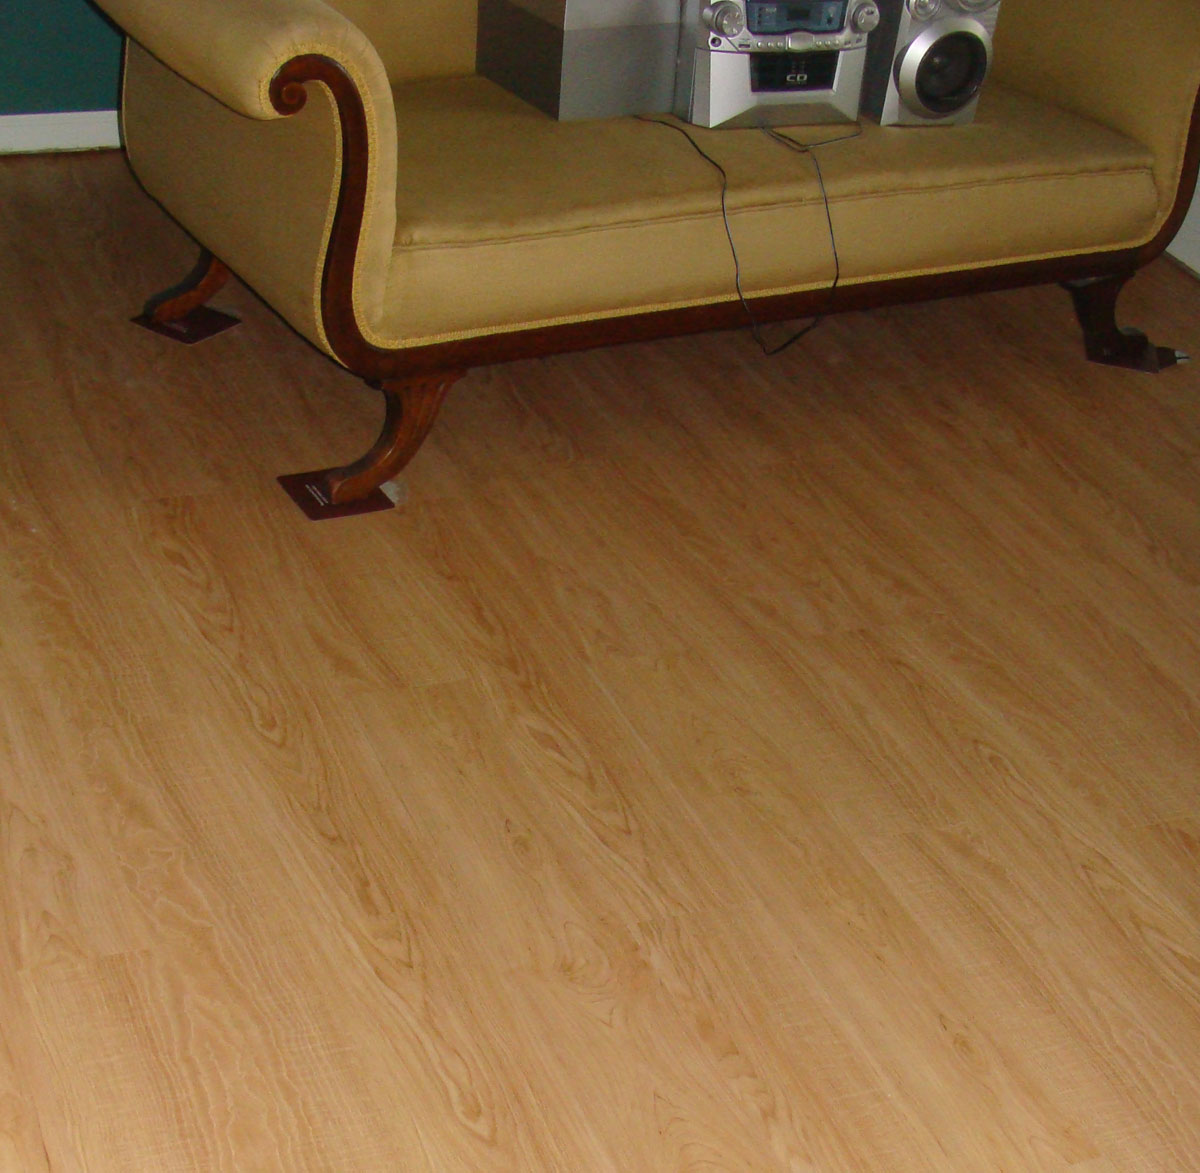 Kacies kreations allure floor in living room for Allure flooring